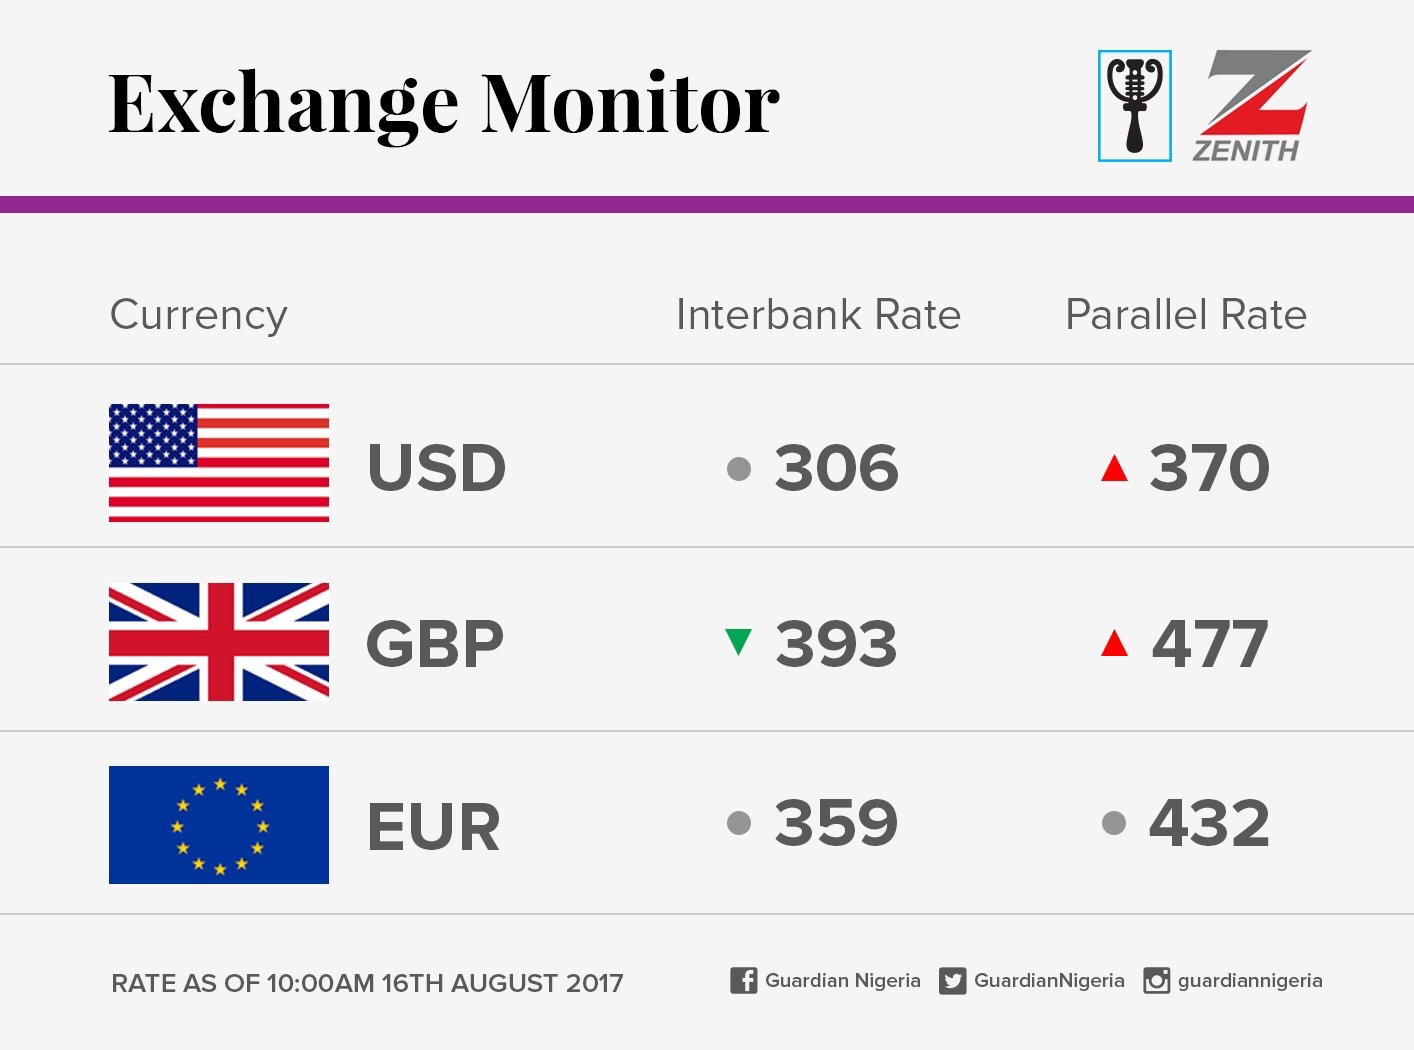 Exchange Rate For 16th August 2017